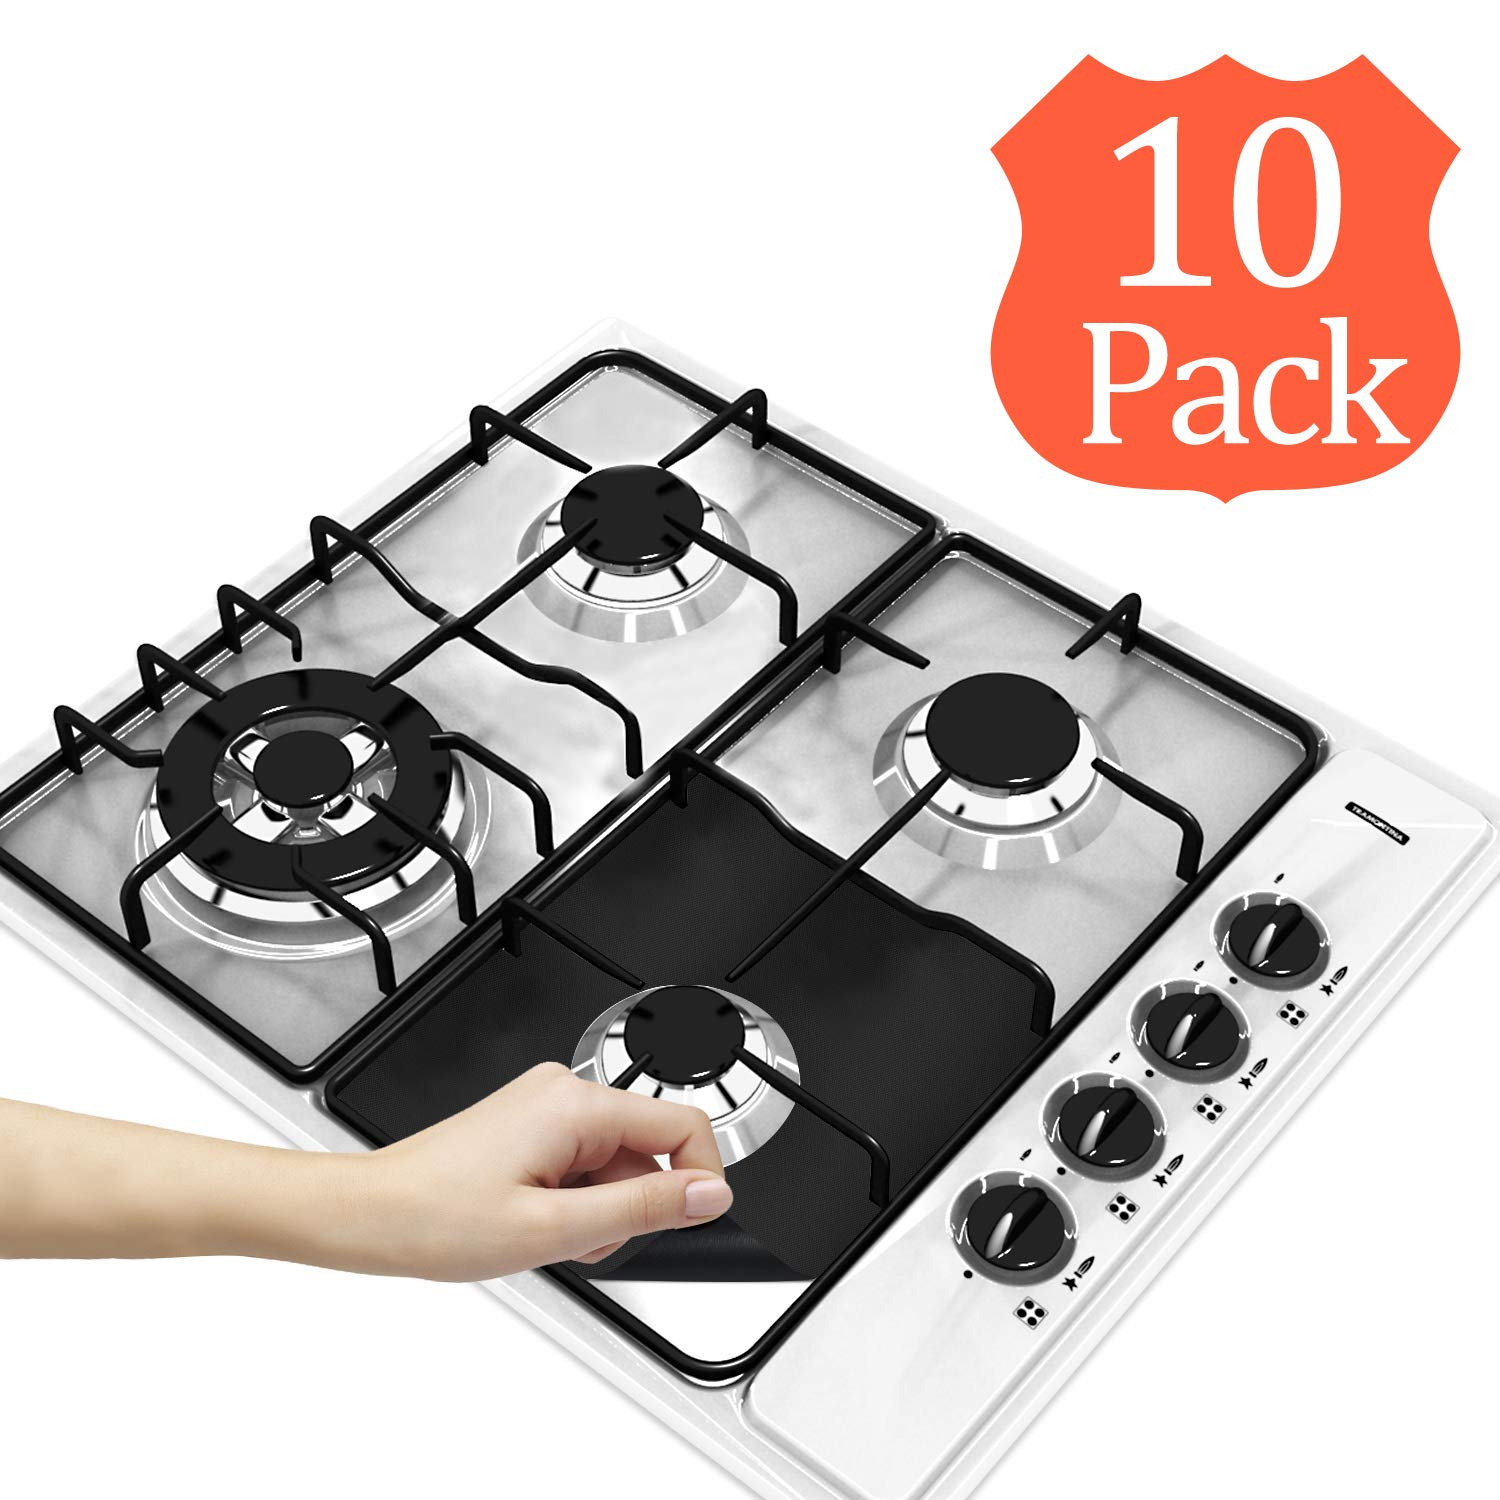 "8-Pack Reusable Gas Stove Burner Covers Dishwasher Safe Totech Non-stick Stovetop Burner Liners Gas Range Protectors for Kitchen- Size 10.6/"" x 10.6/""-Double Thickness 0.2mm Easy to Clean Cuttable"